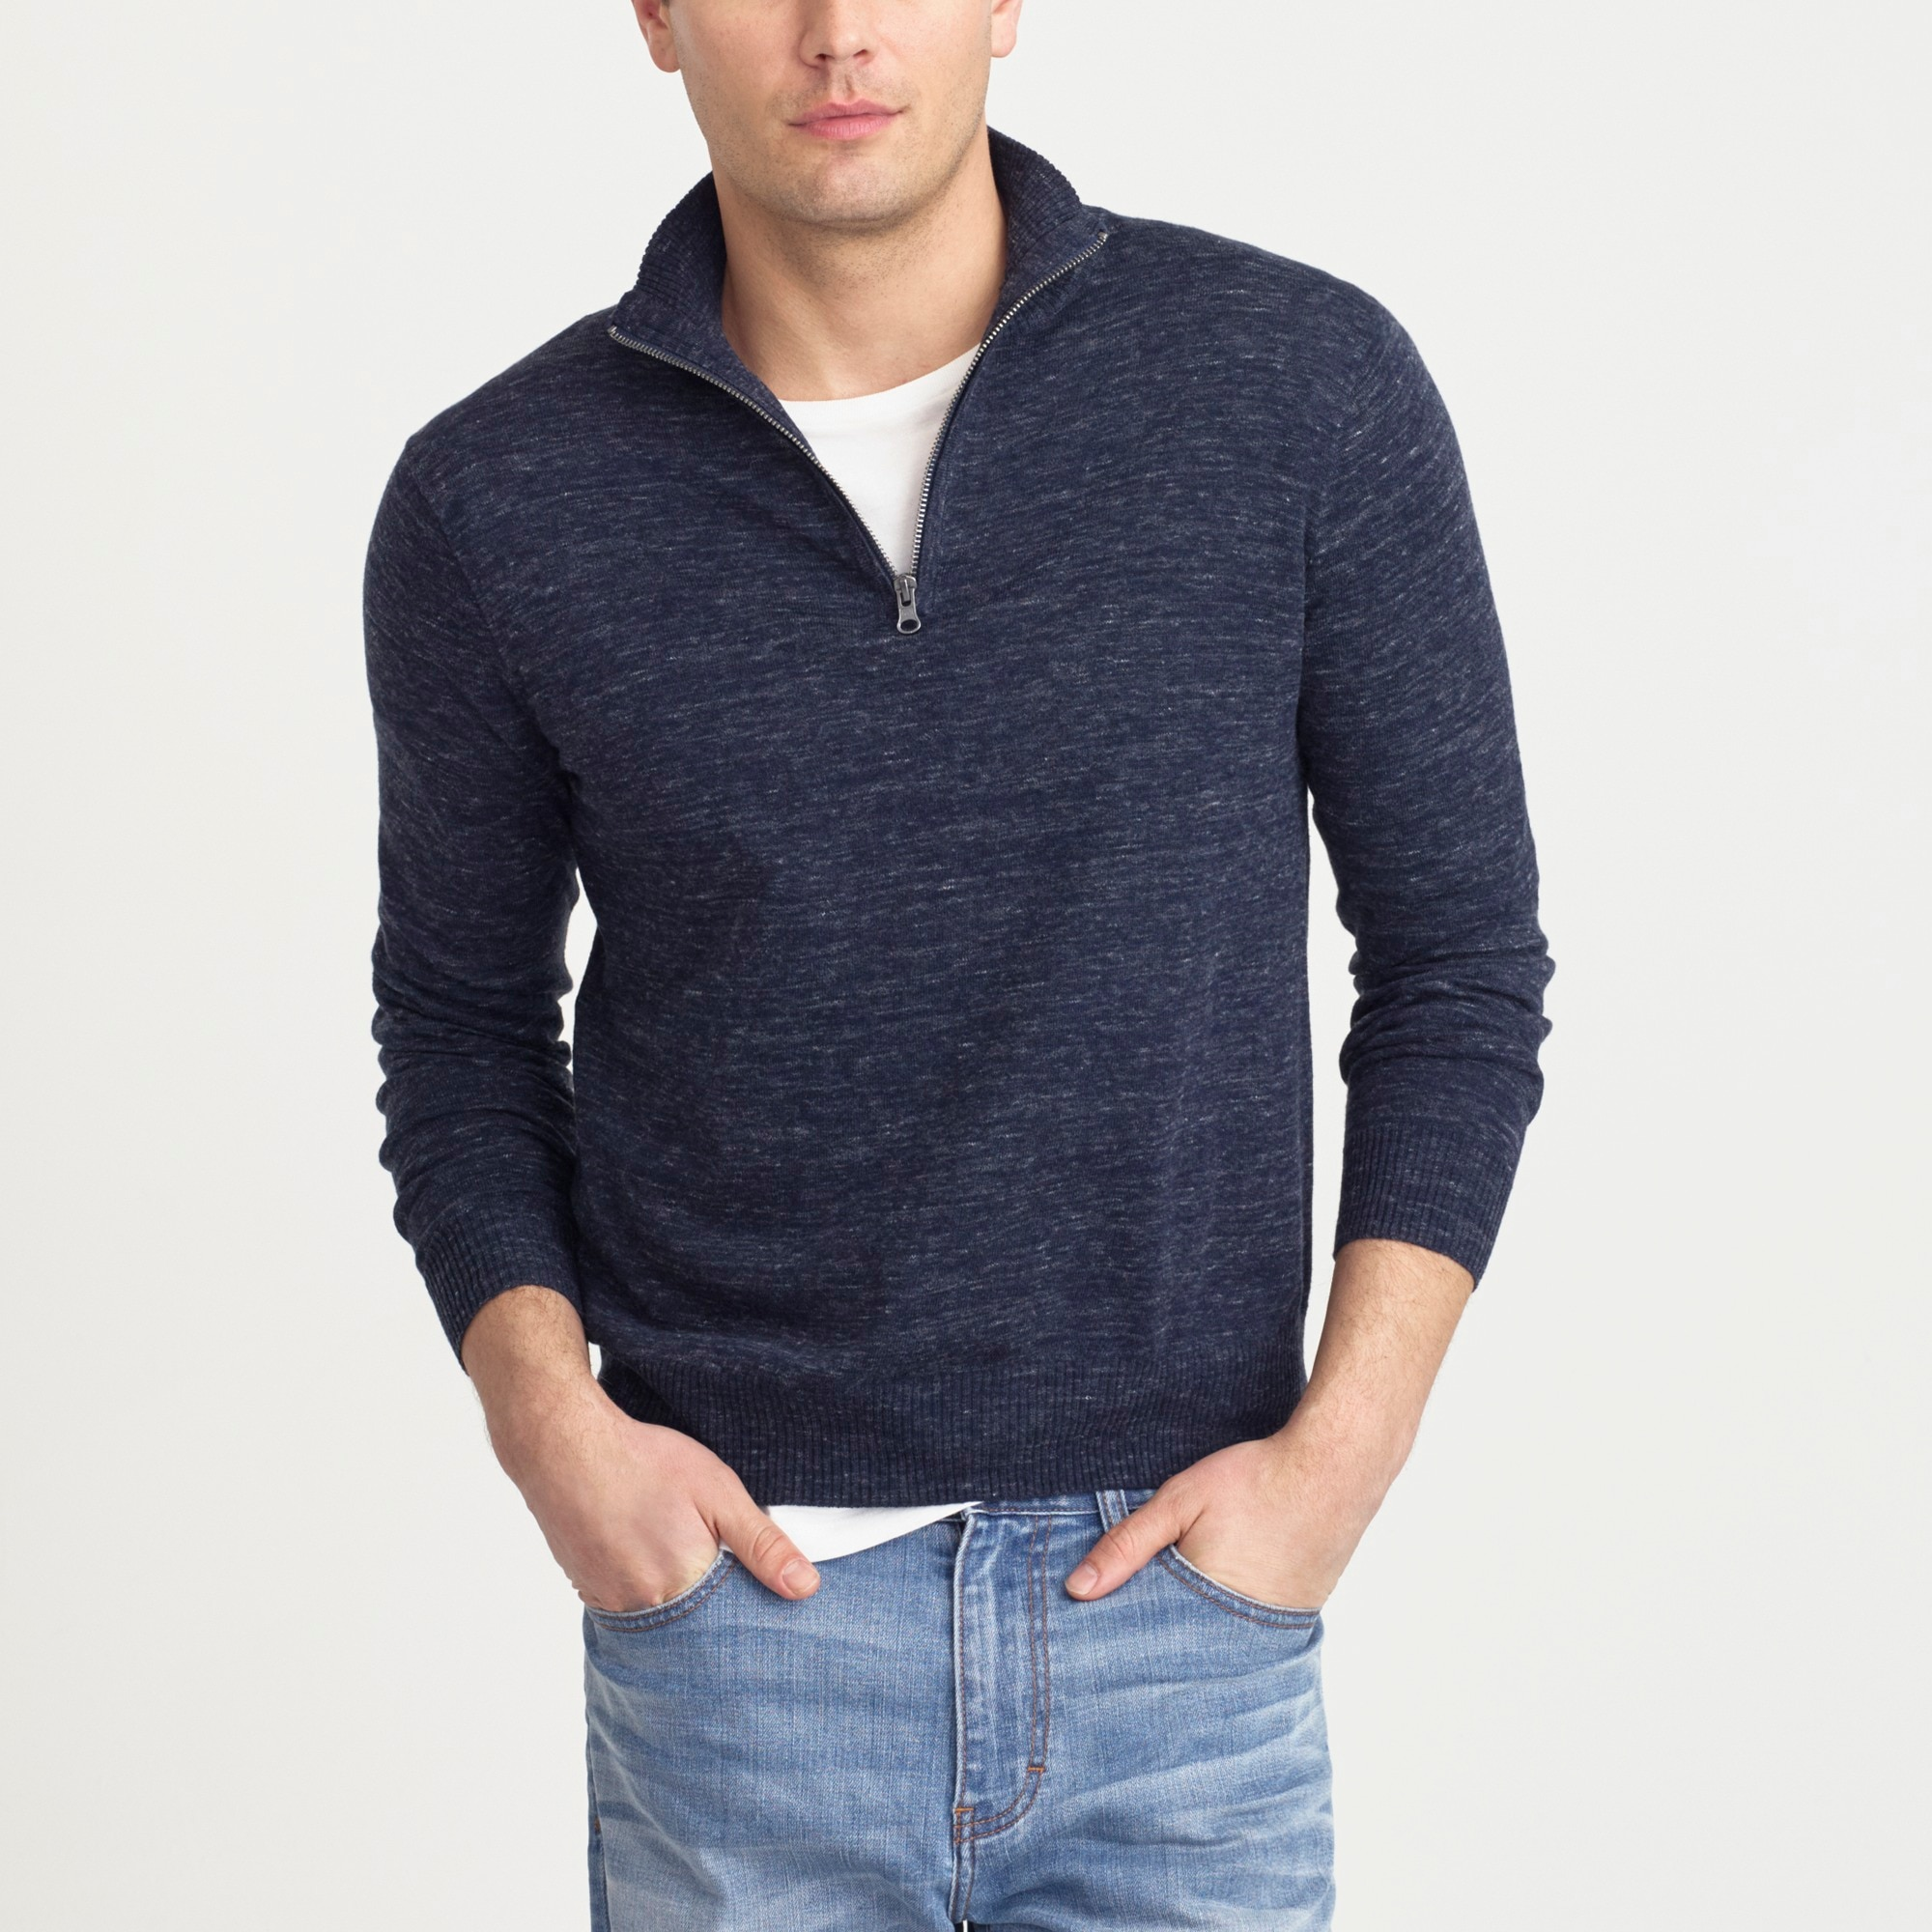 Cotton-linen half-zip sweater factorymen sweaters c